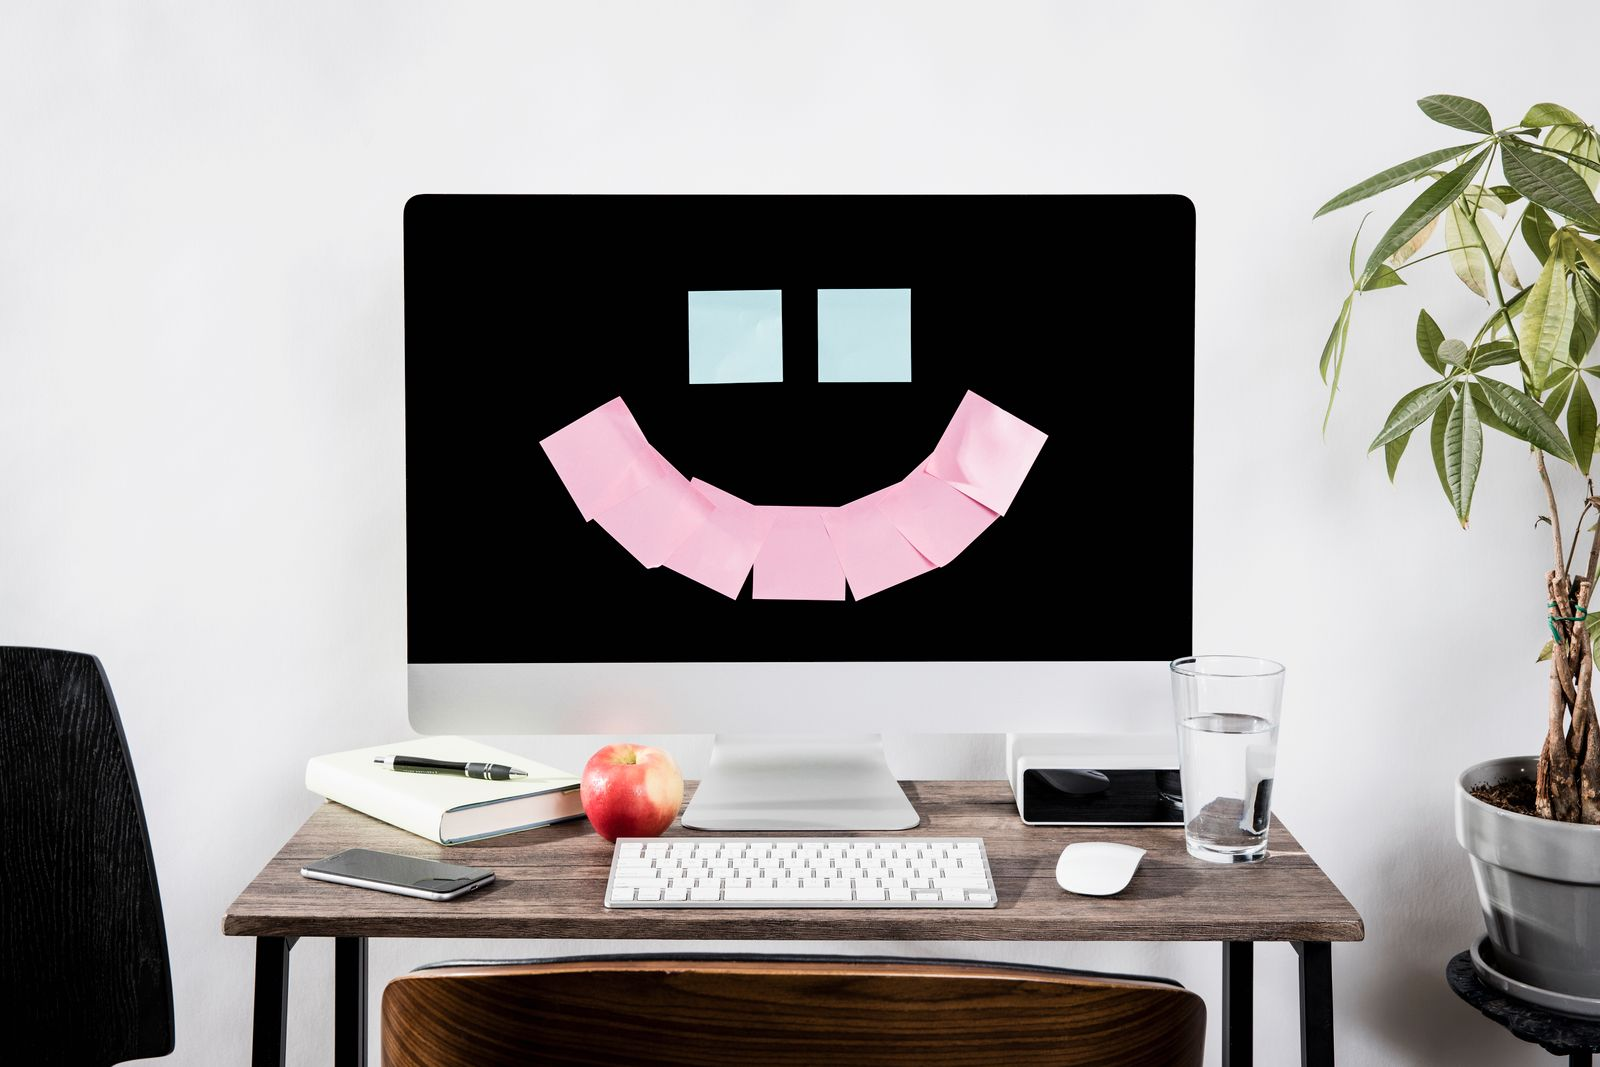 Adhesive notes forming smiley face on computer